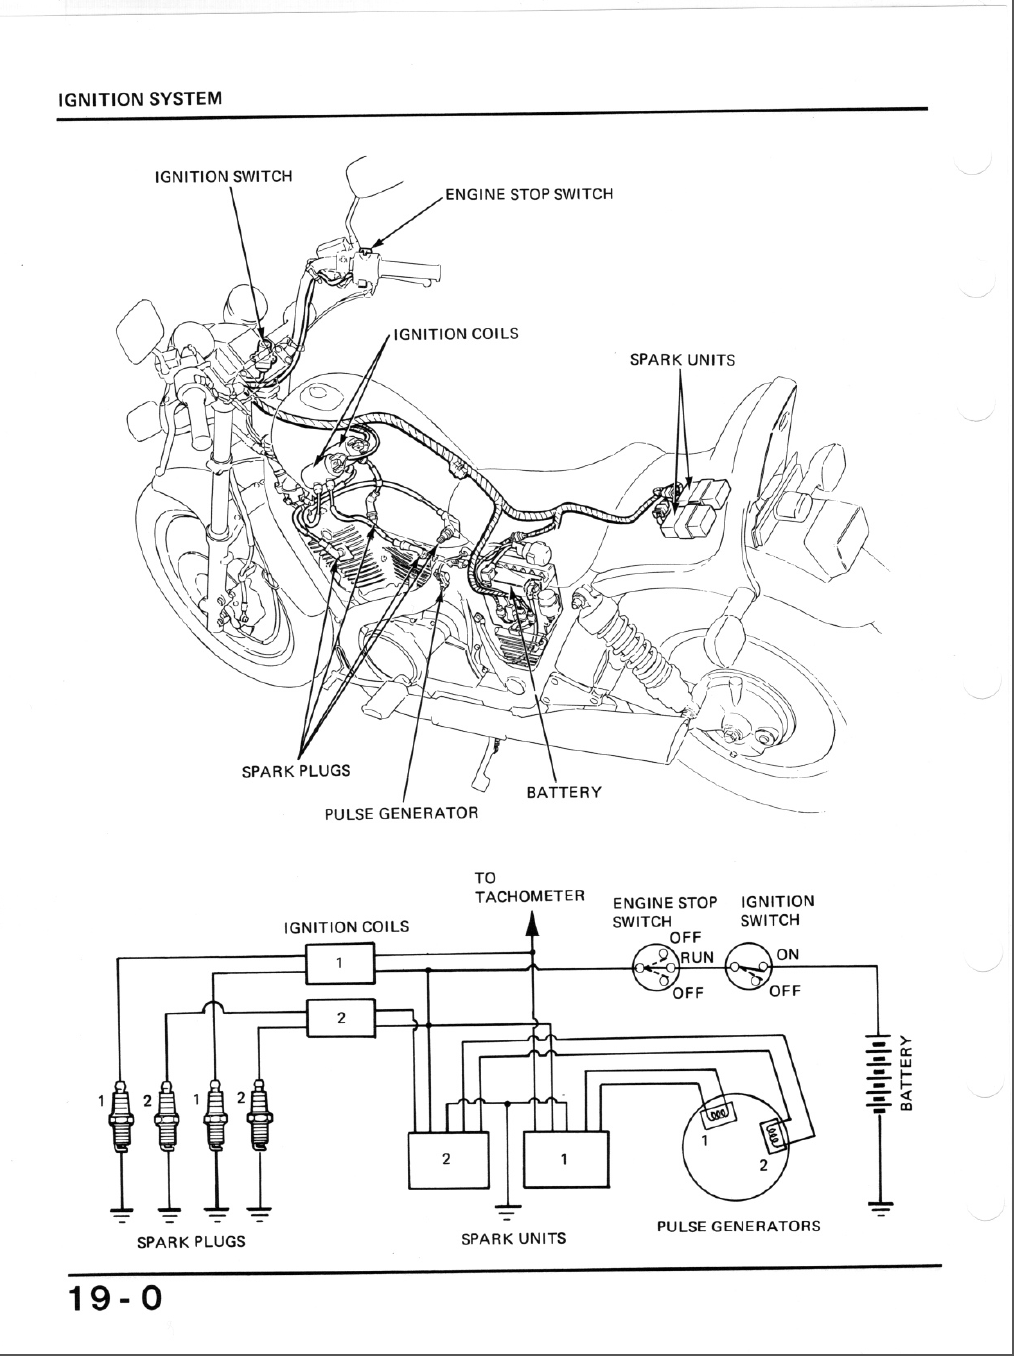 9267d1409799693 1984 honda shadow 700 ignition system 1984 honda shadow 700 1984 honda shadow vt700c wiring diagram at bakdesigns.co